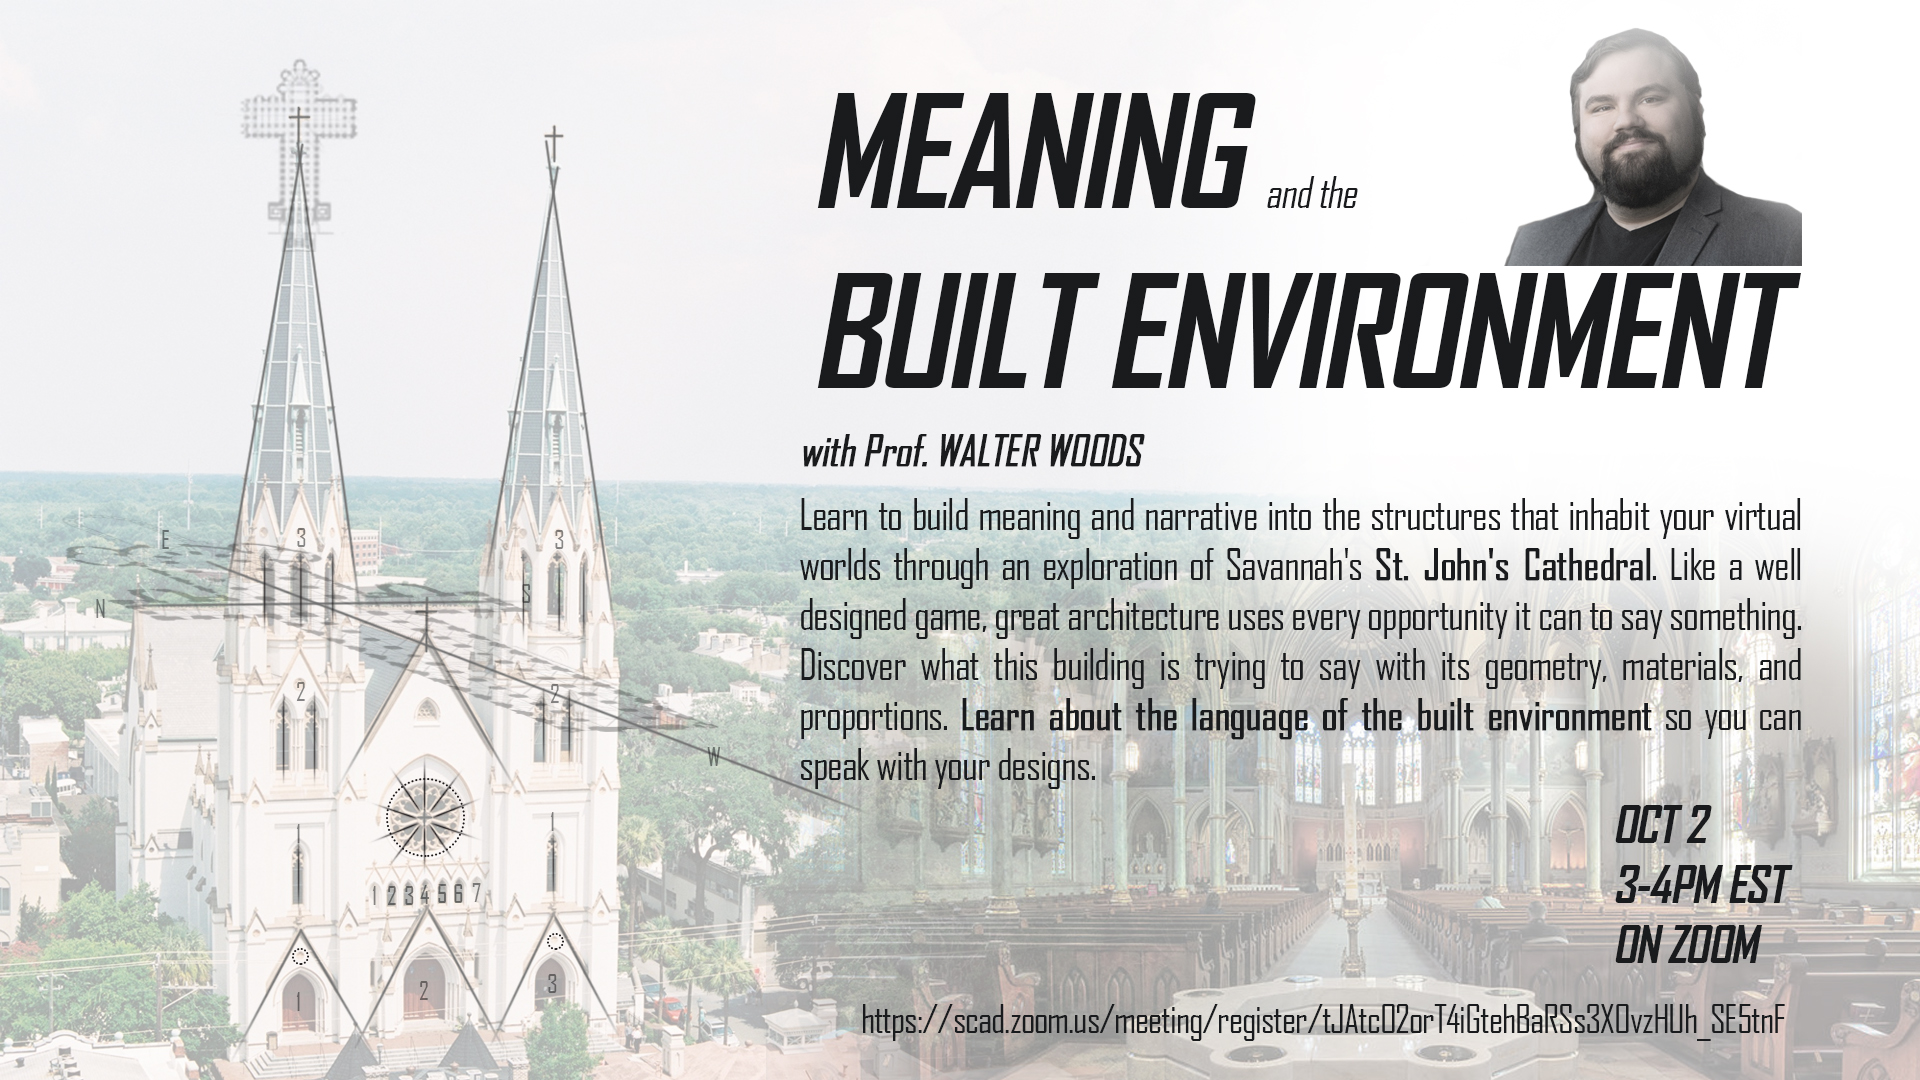 Meaning and Built Environment with Prof. Walter Woods